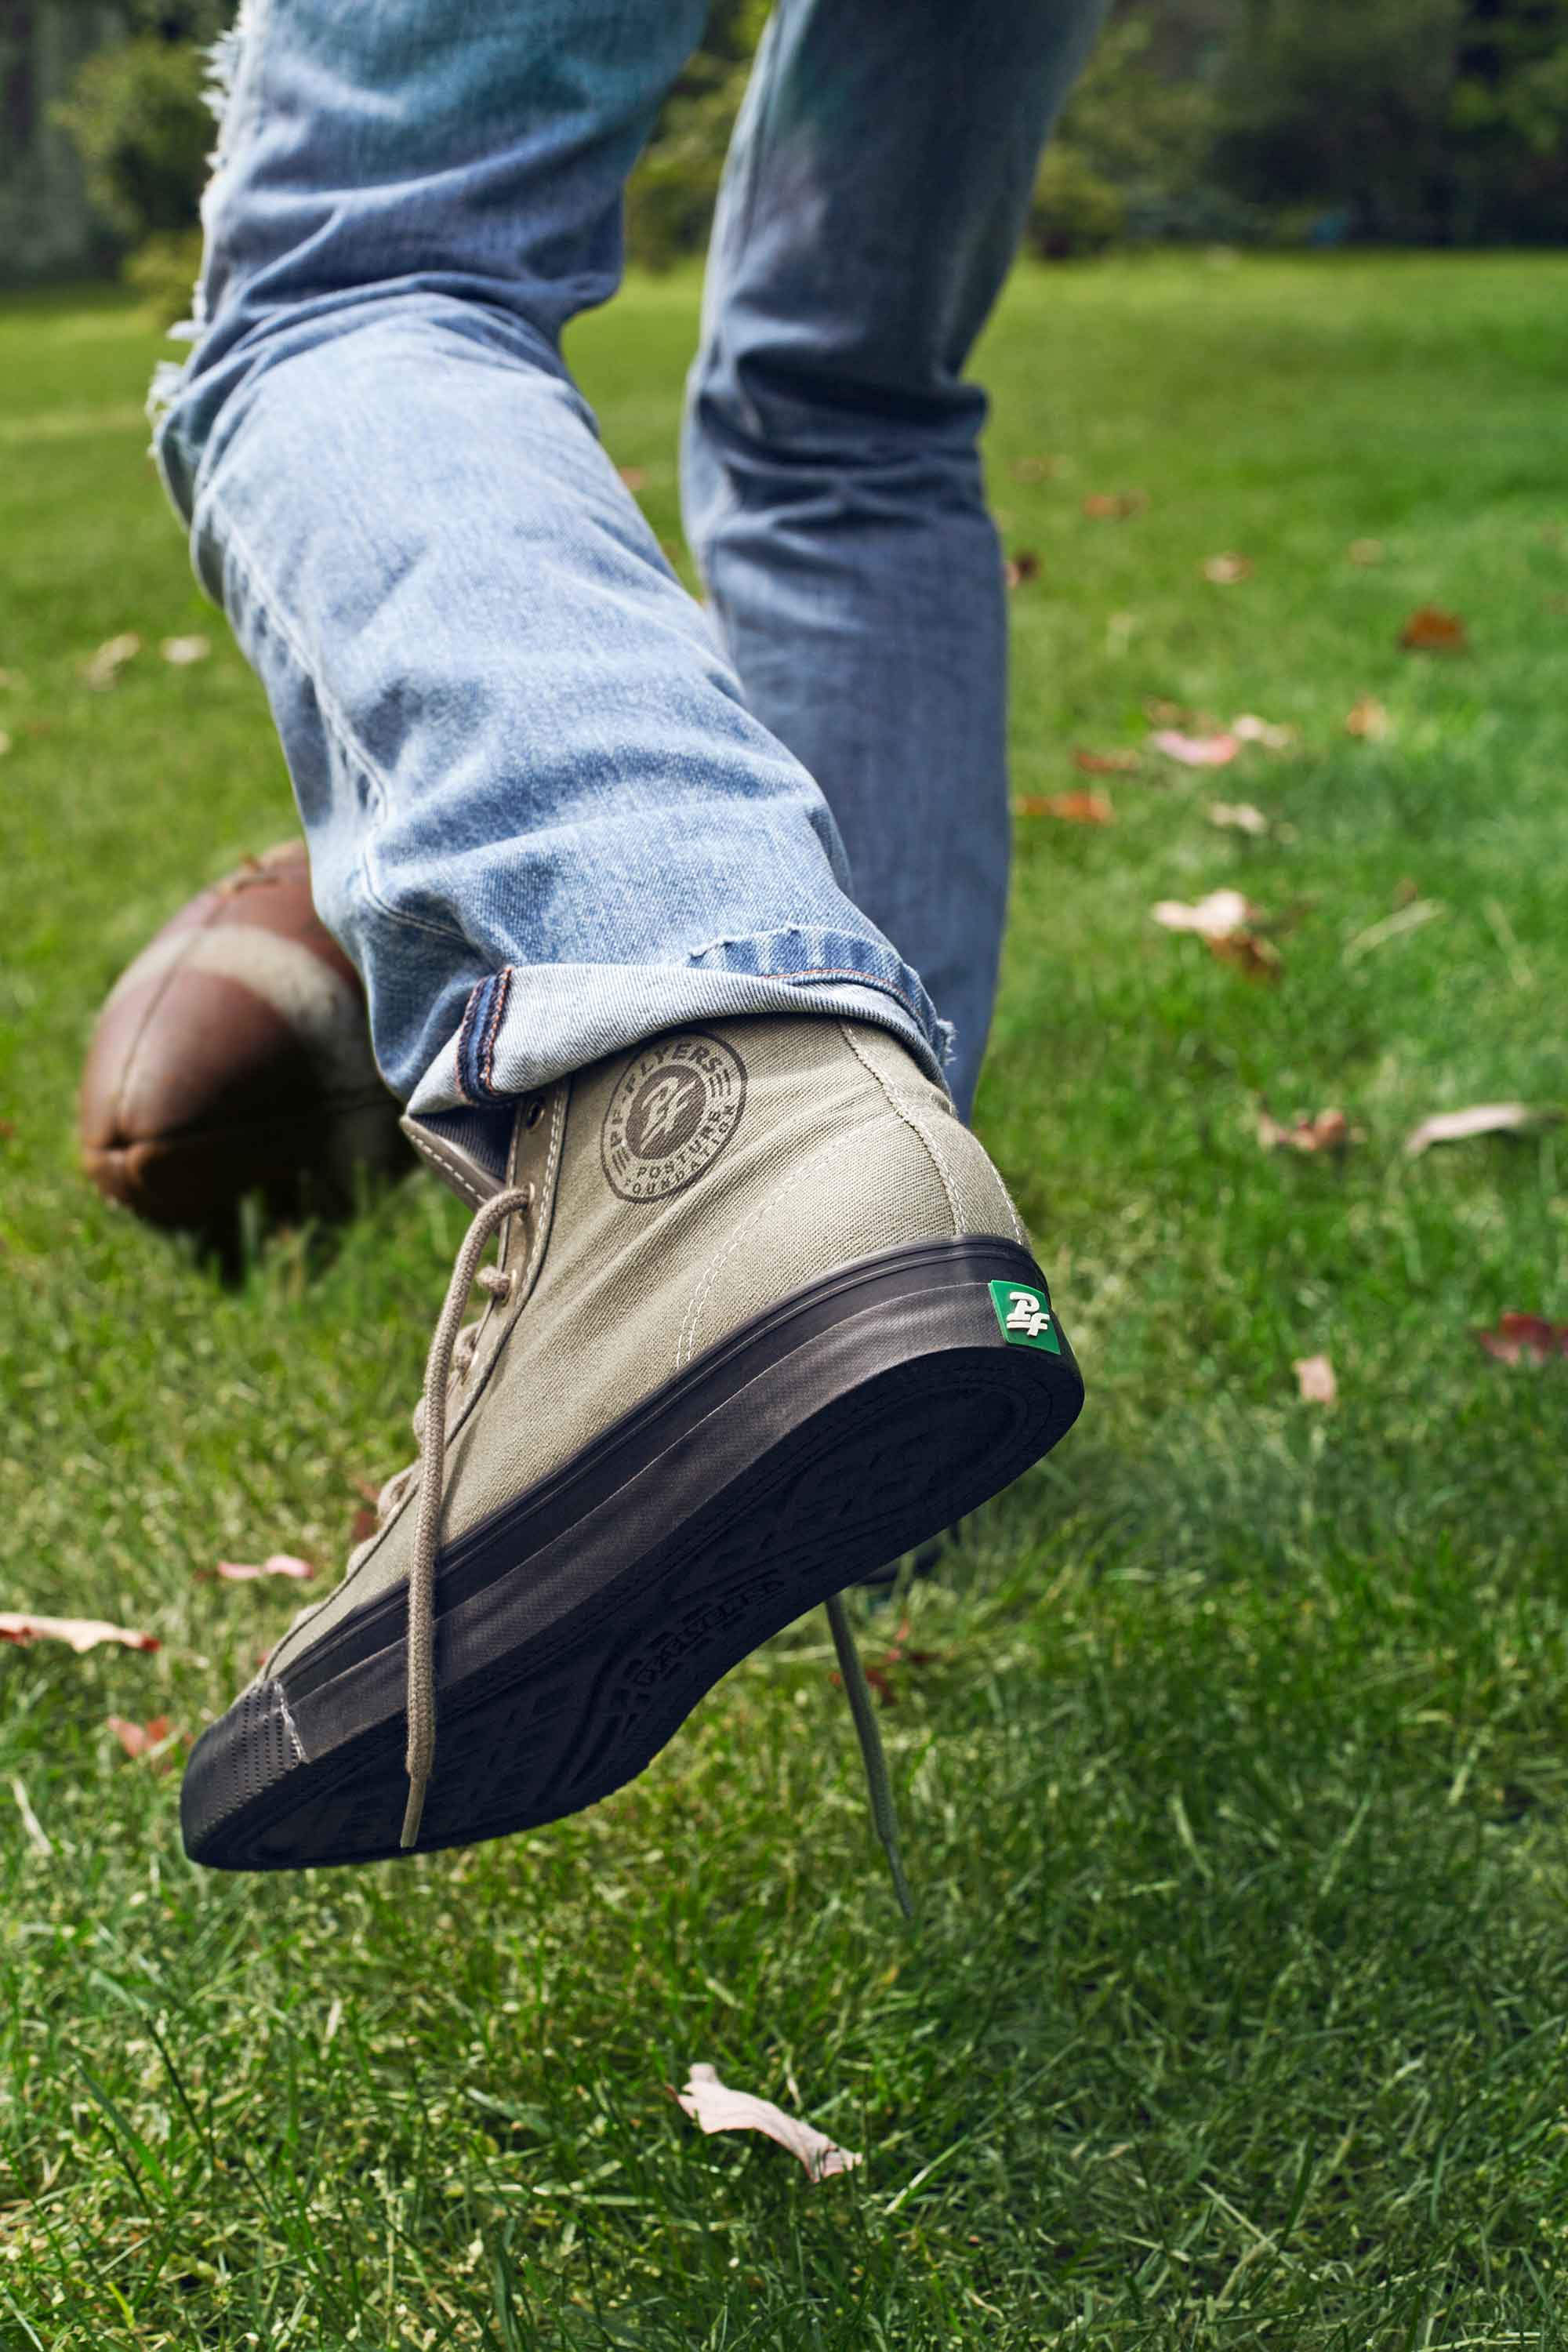 image of PF Flyers shoes on feet kicking ball